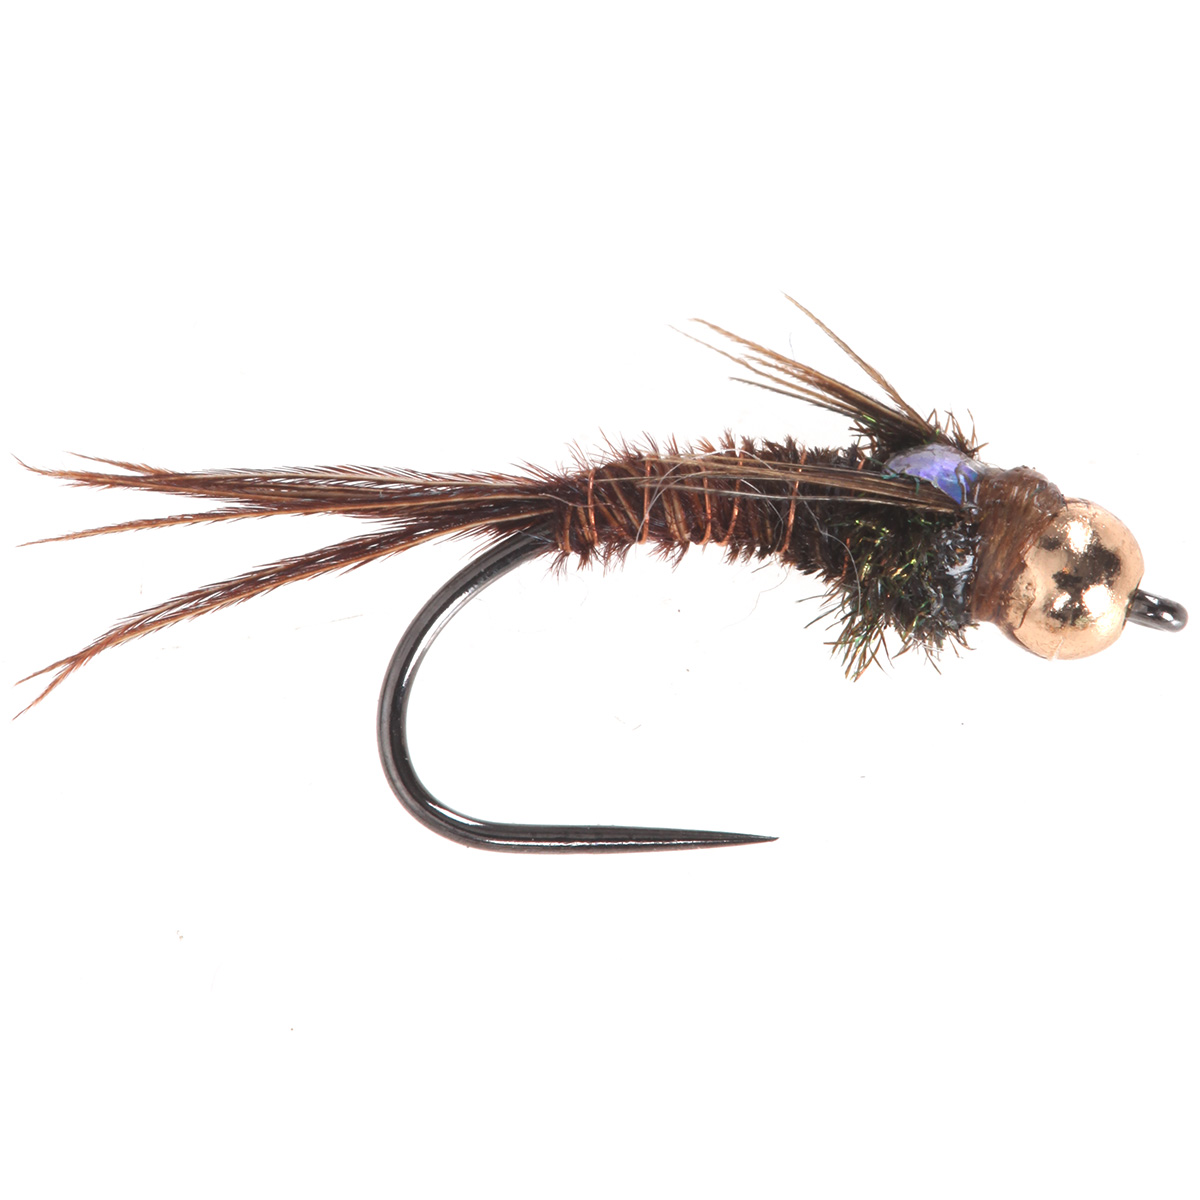 Pheasant tail nymph bead head flashback tungsten beads for Fly fishing nymphs